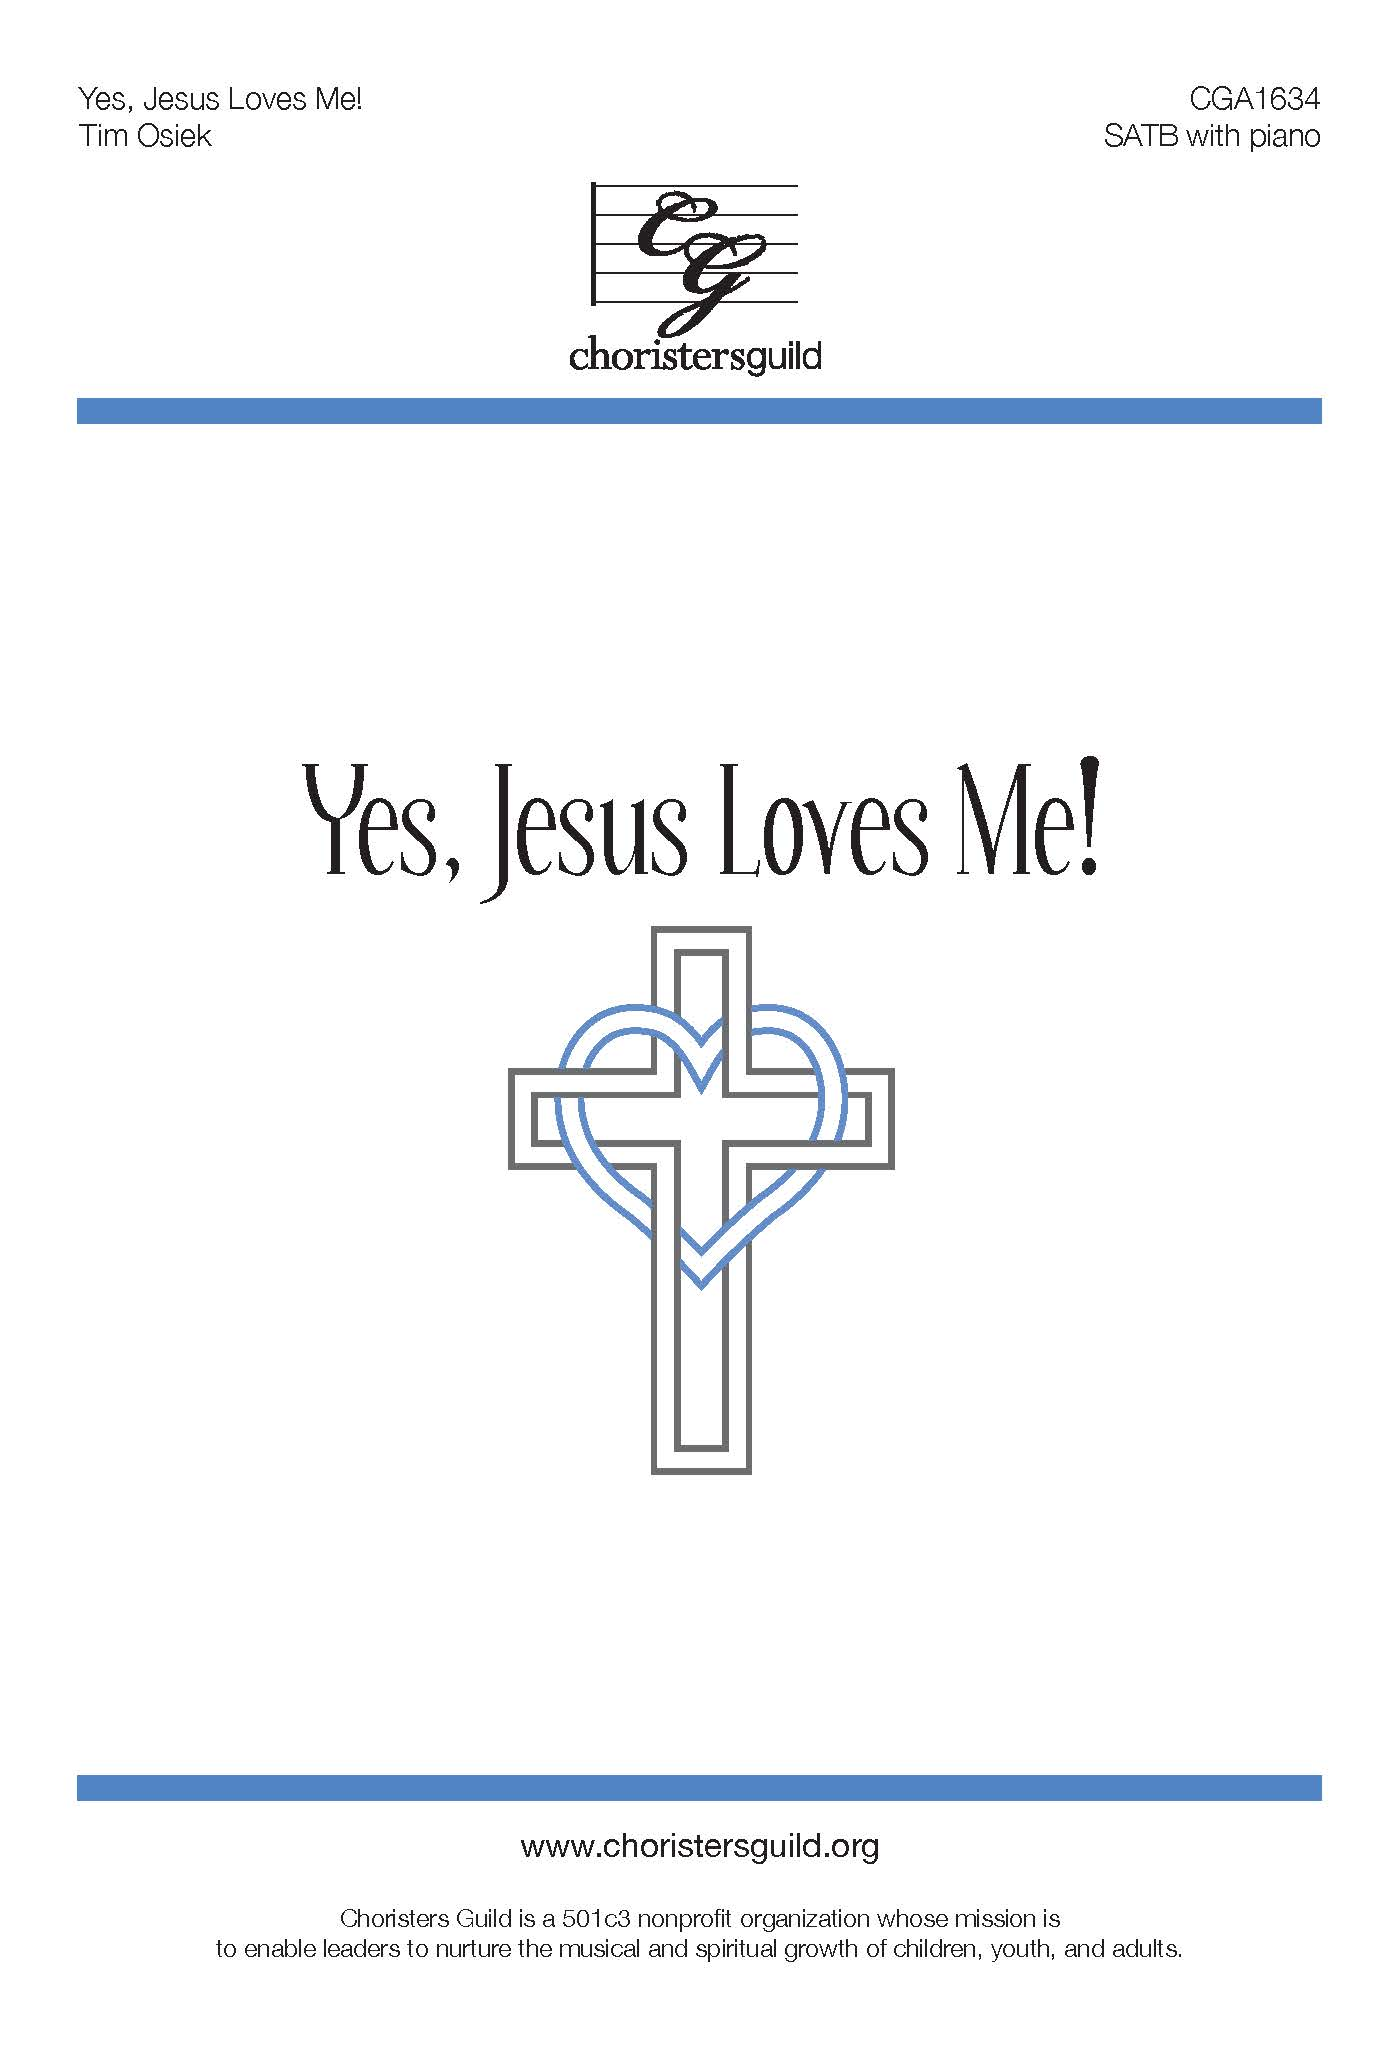 Yes, Jesus Loves Me! - SATB